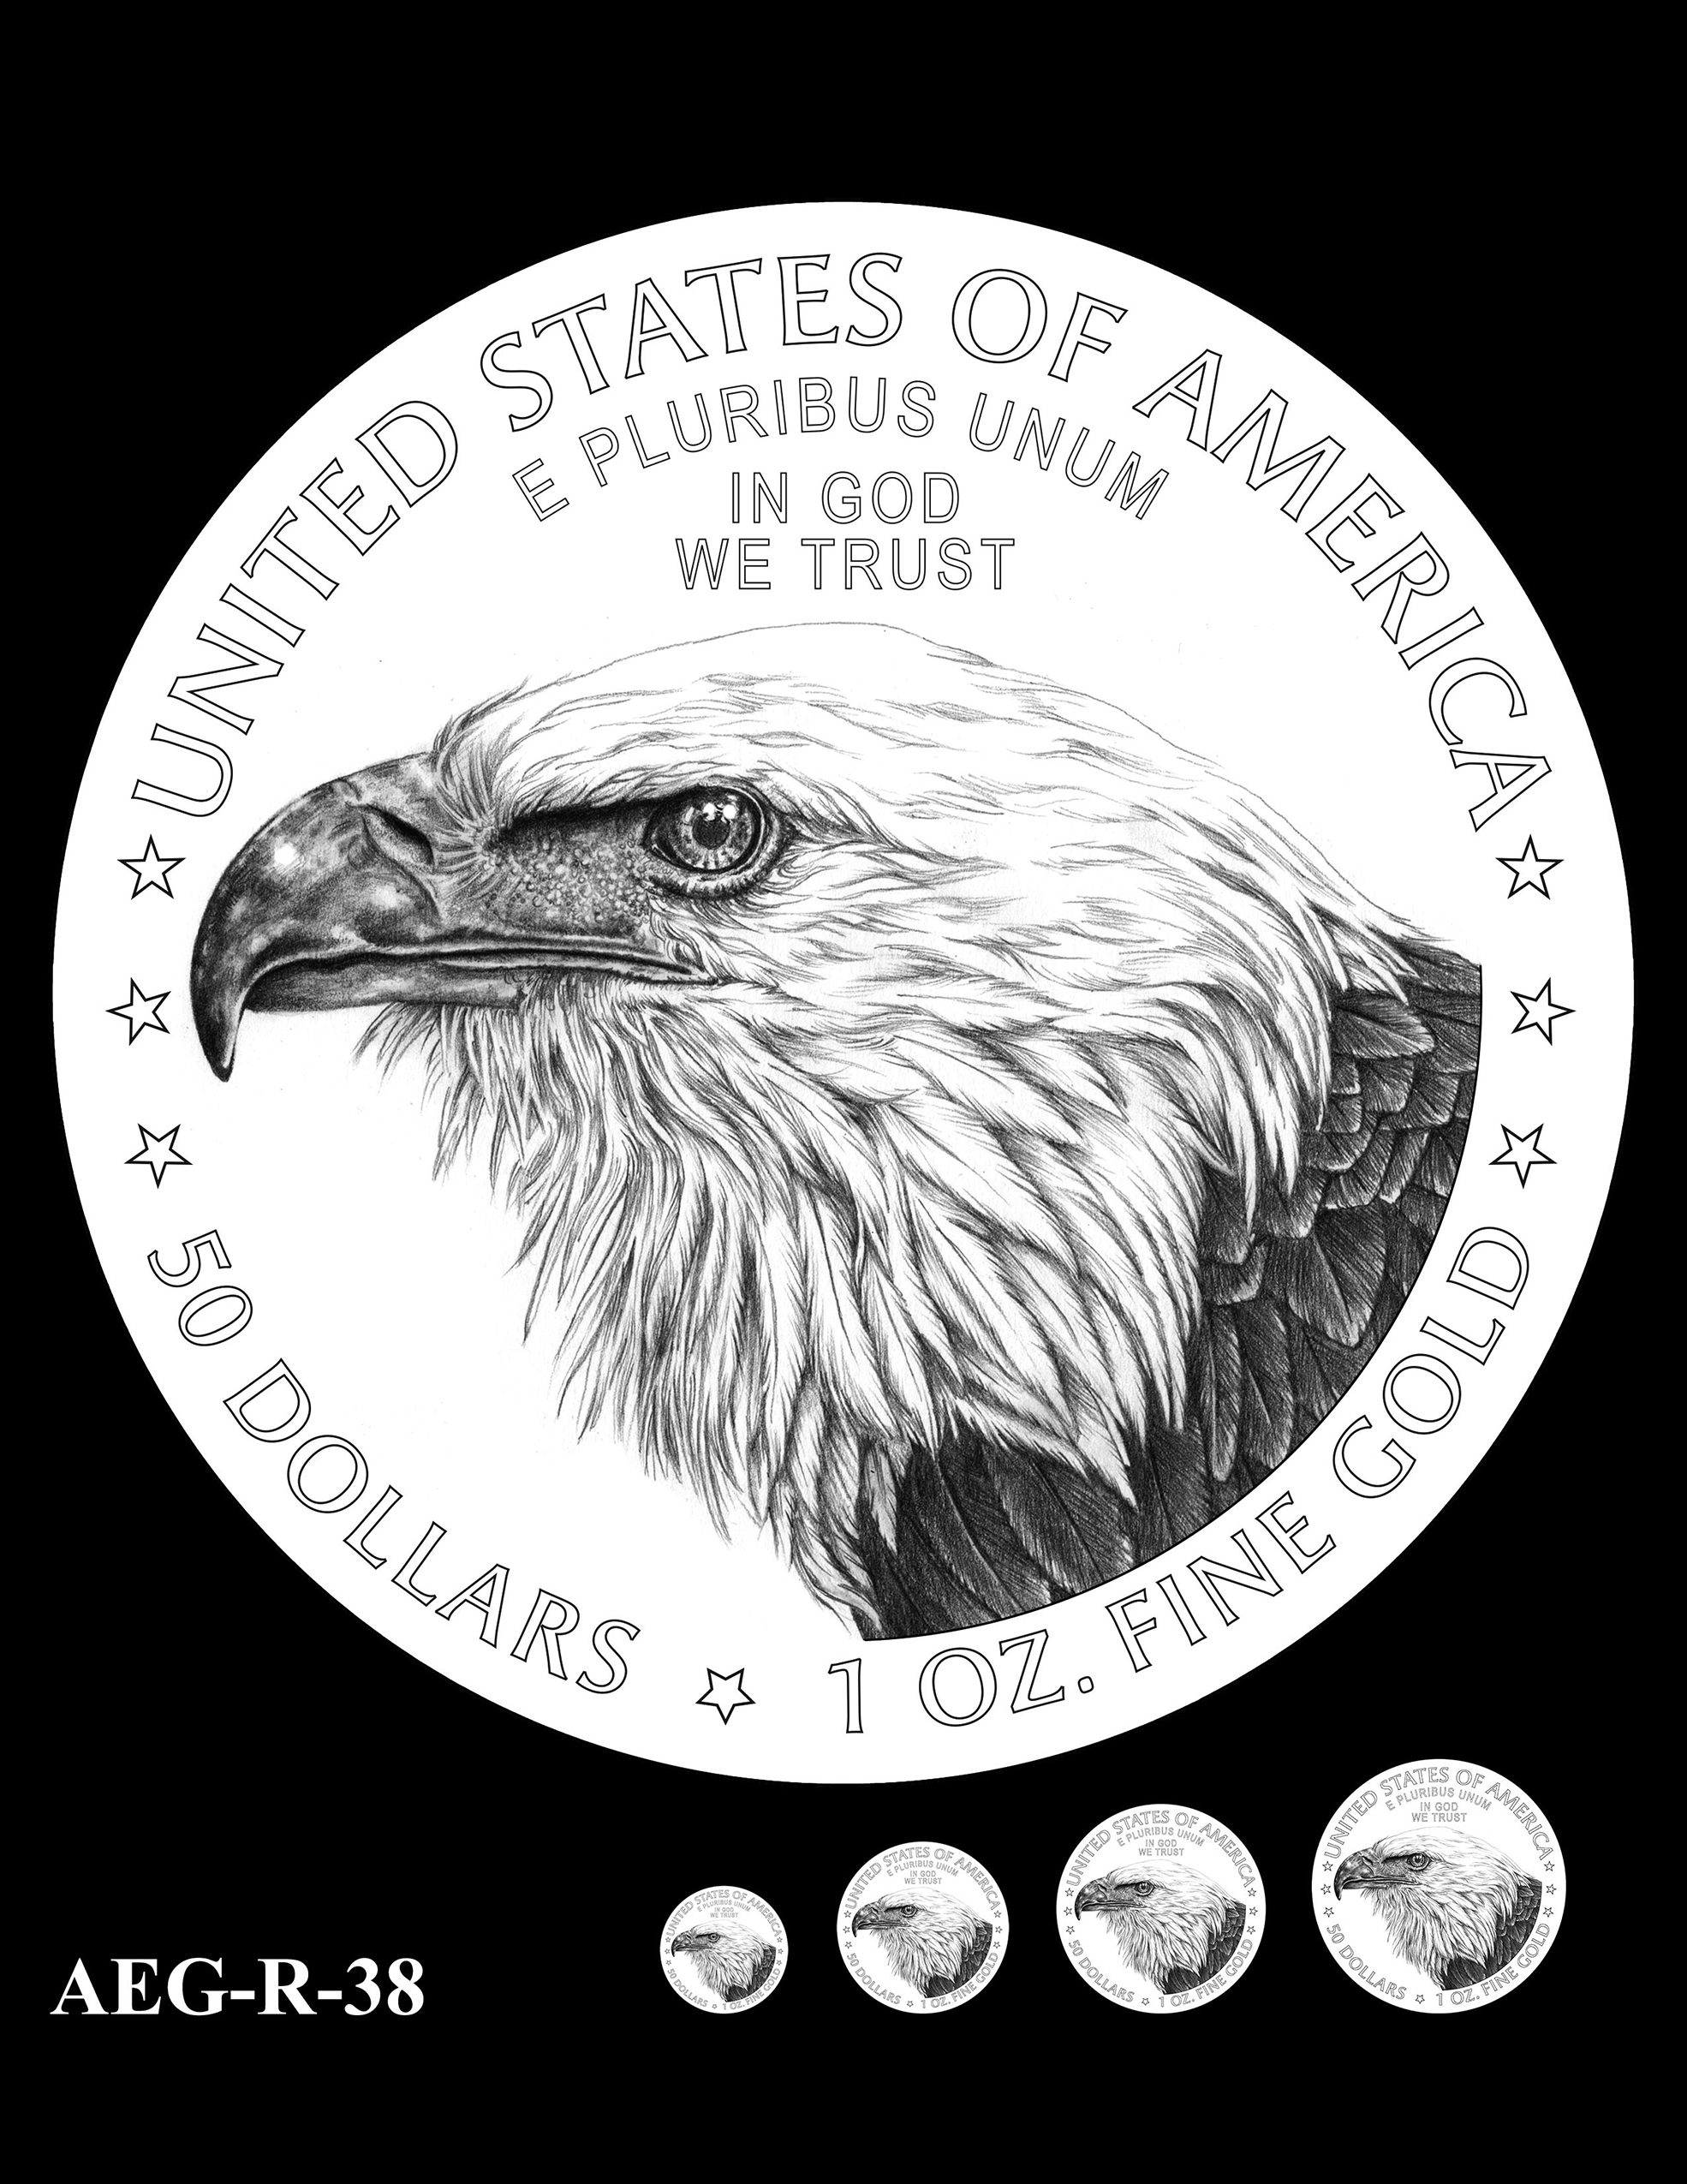 AEG-R-38 -- American Eagle Proof and Bullion Gold Coin - Reverse